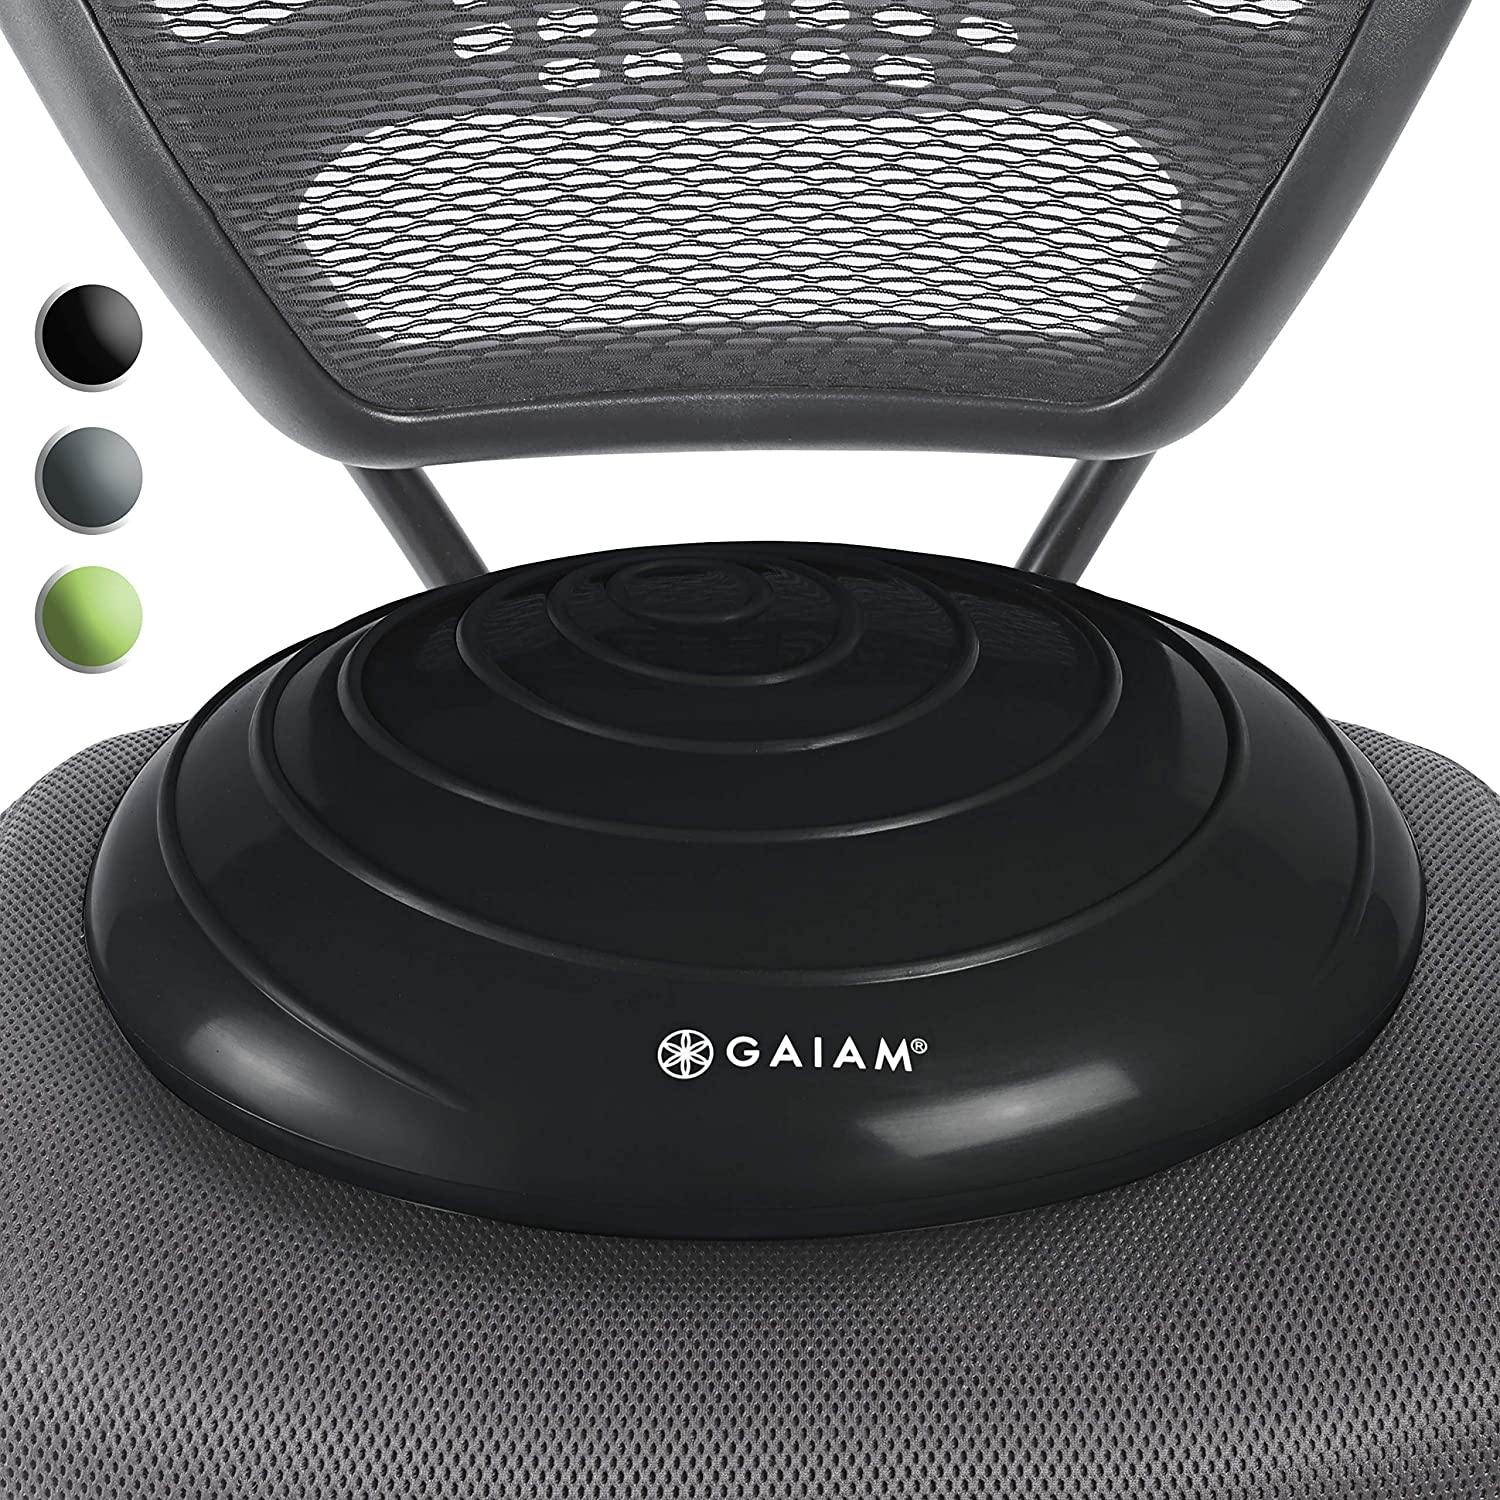 Gaiam Balance Disc Wobble Cushion Stability Core Trainer for Home or Office Desk Chair & Kids Alternative Classroom Sensory Wiggle Seat (Renewed)